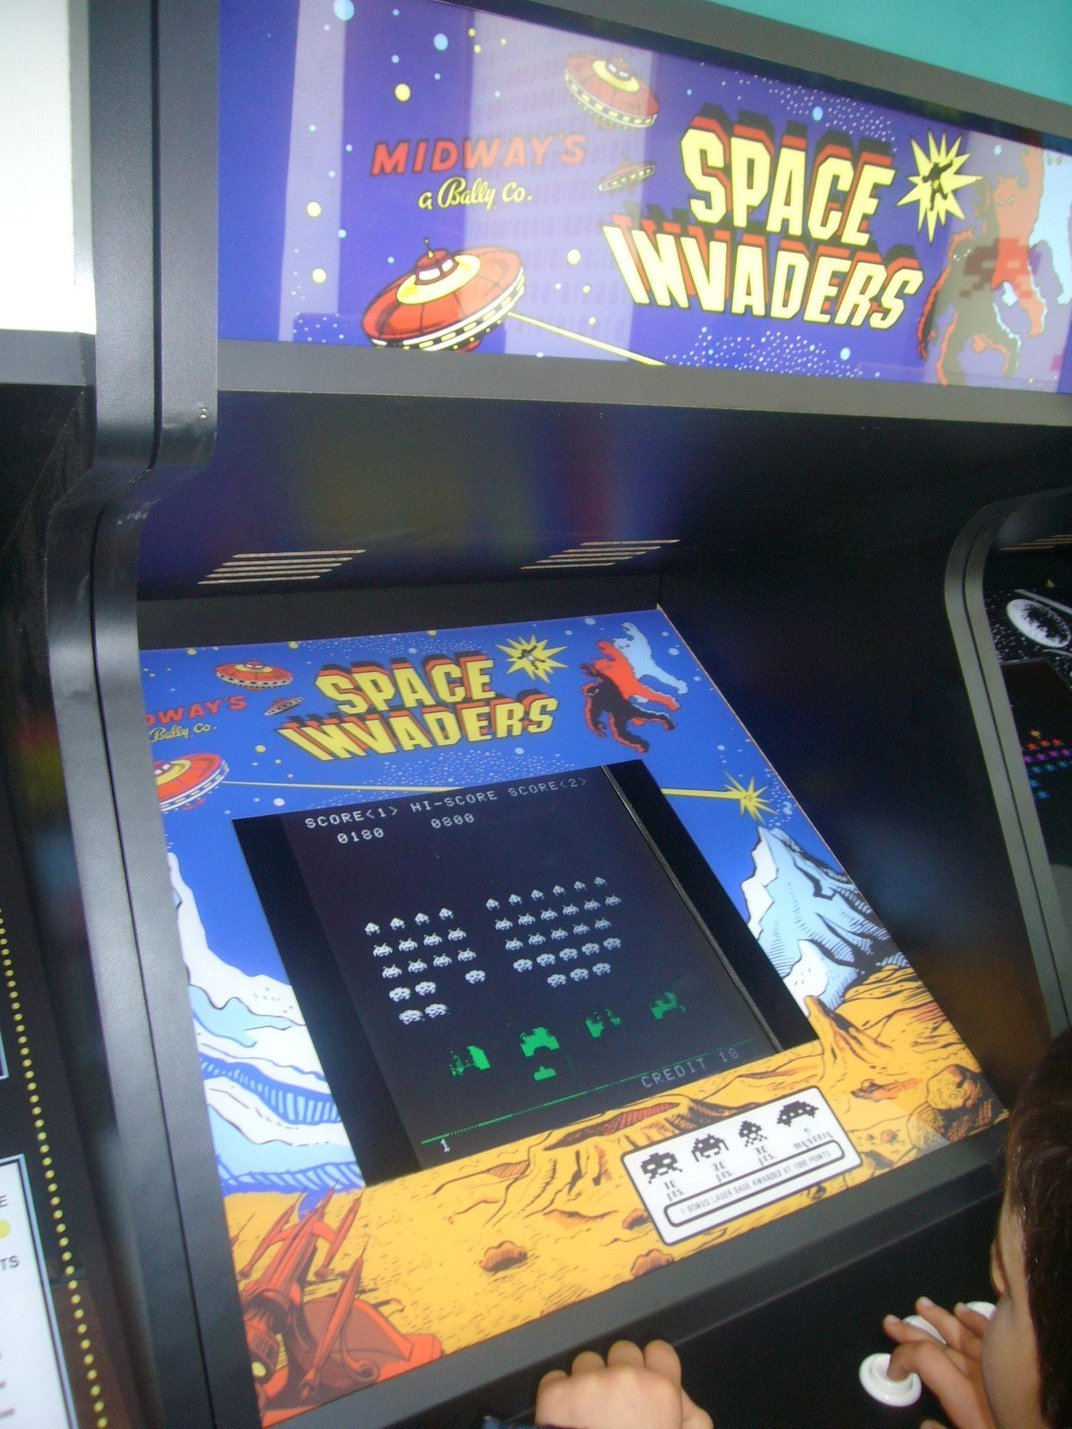 The Original 'Space Invaders' Is a Meditation on 1970s America's Deepest Fears